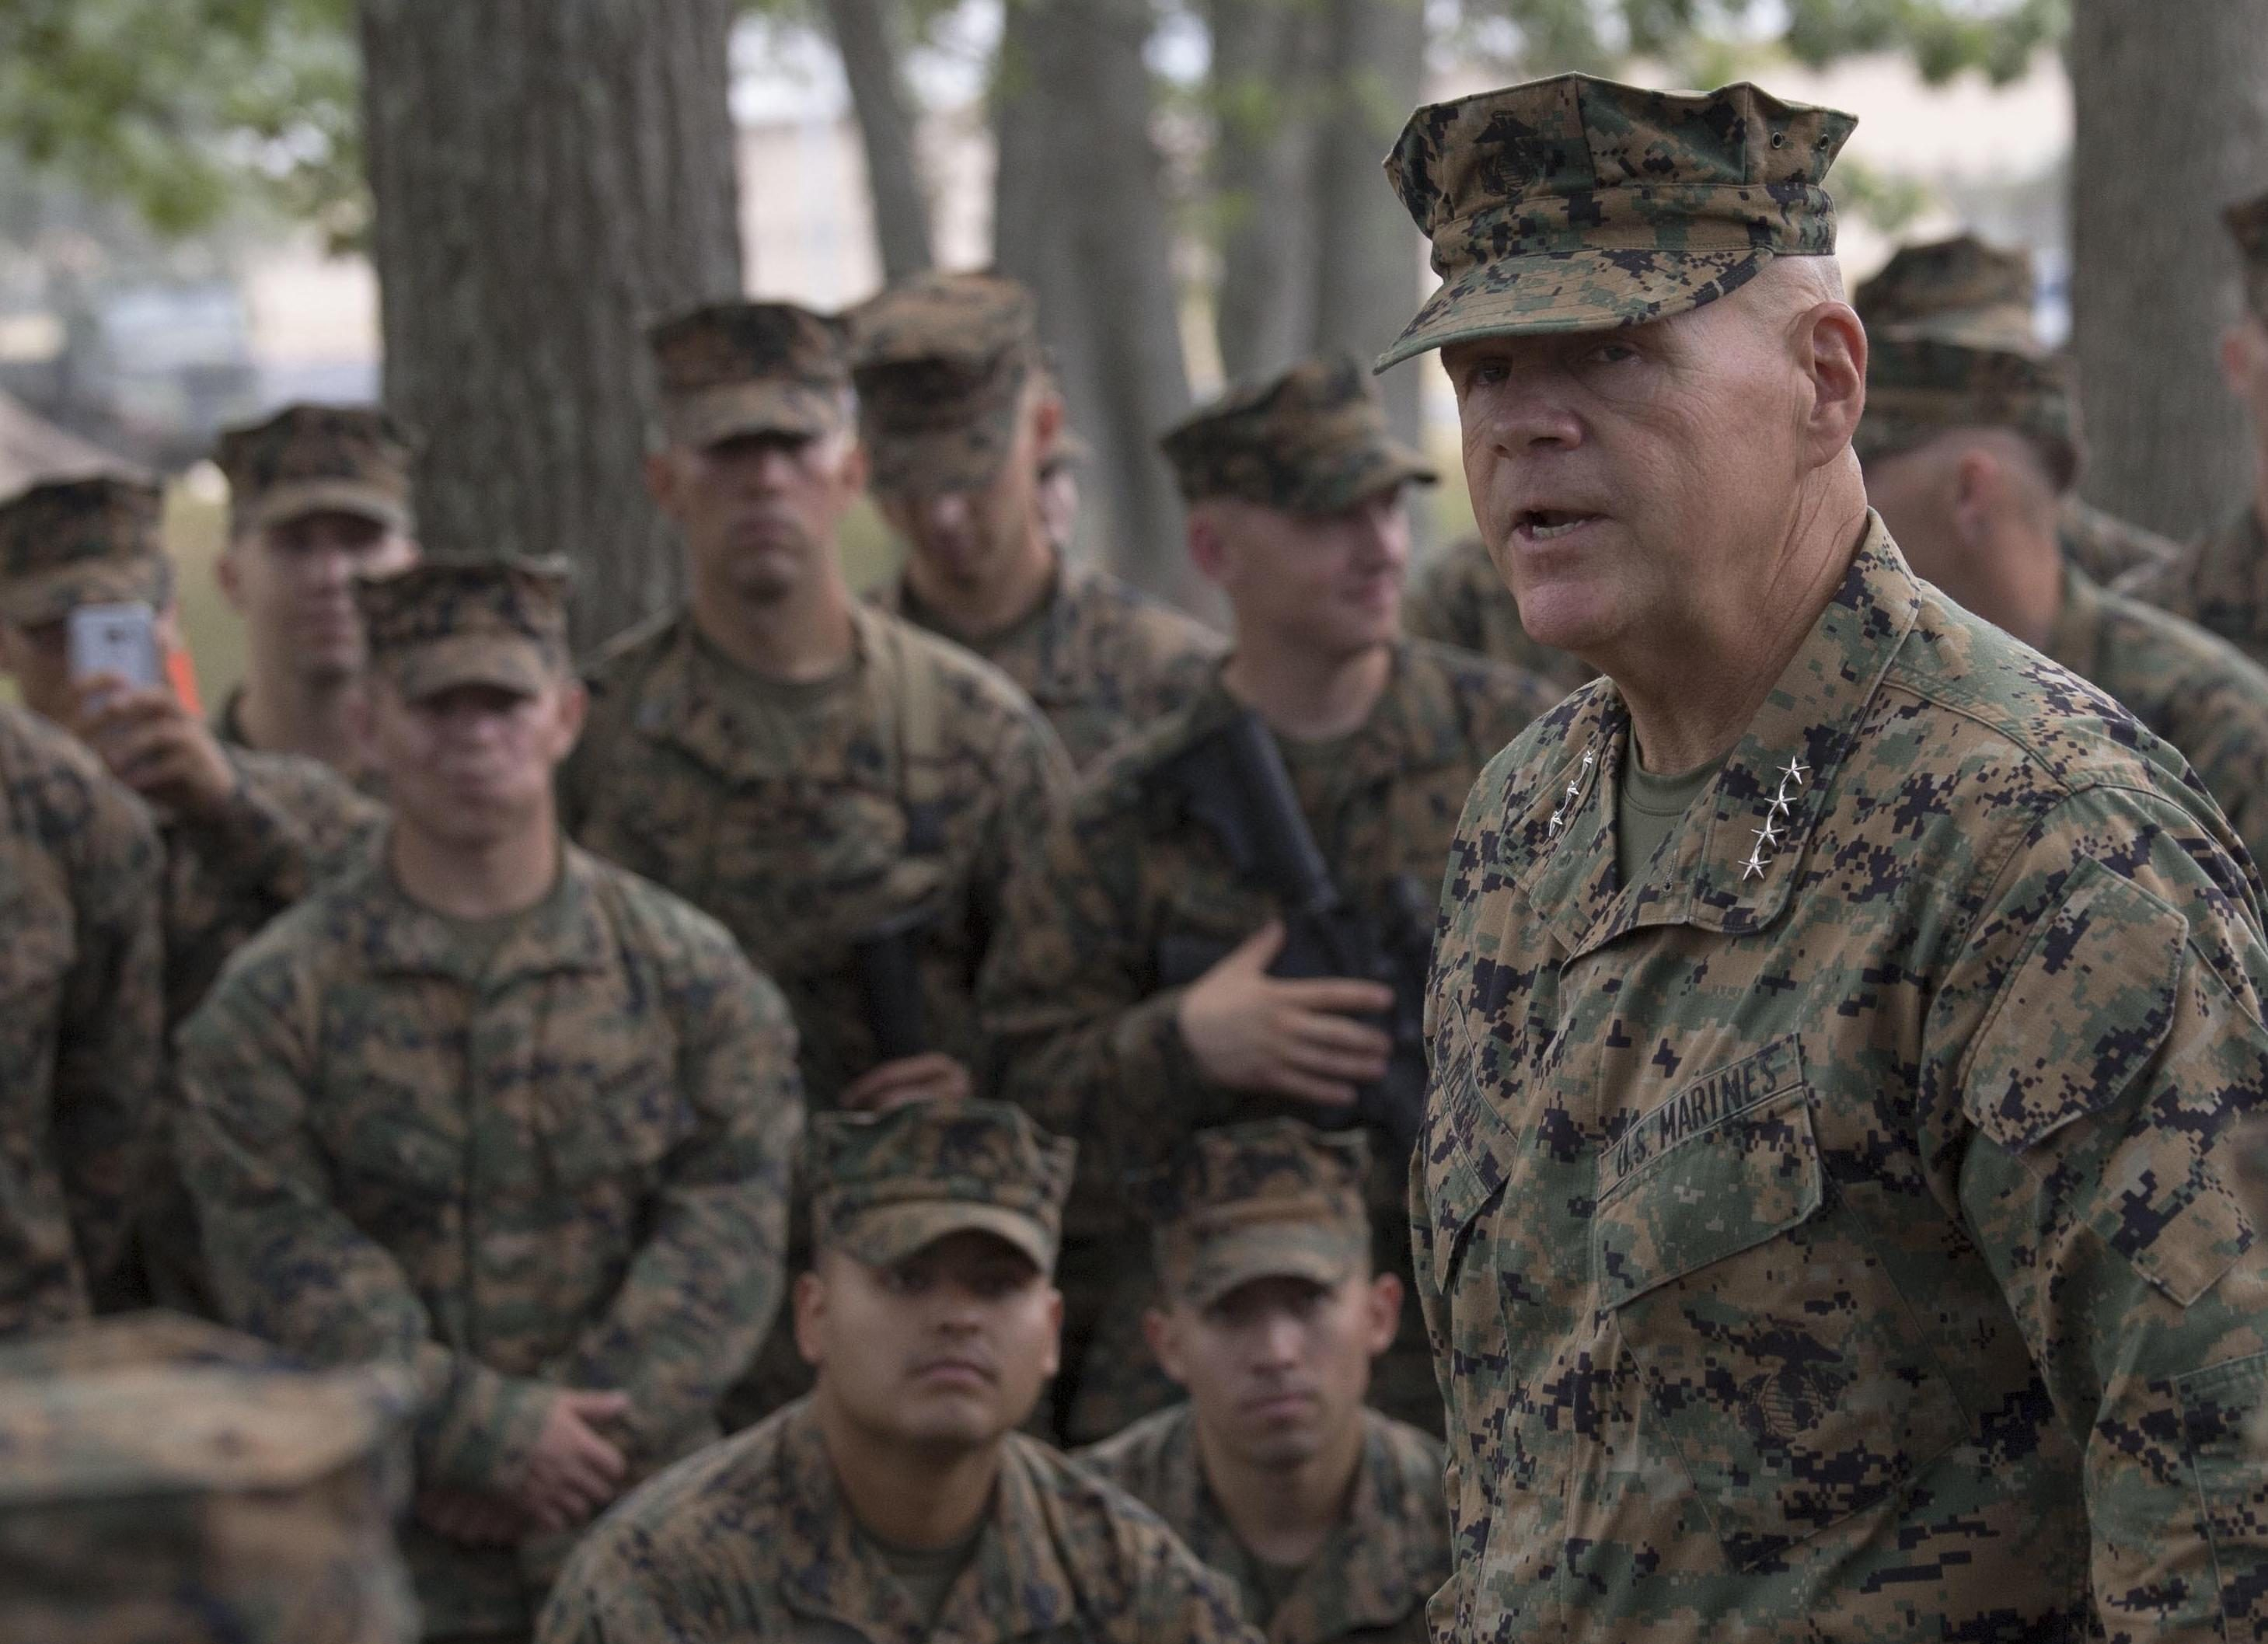 Gen. Robert B. Neller, Commandant of the Marine Corps, speaks with a group of Marines from Marine Forces Reserve on Aug. 24, 2016. US Marine Corps Photo